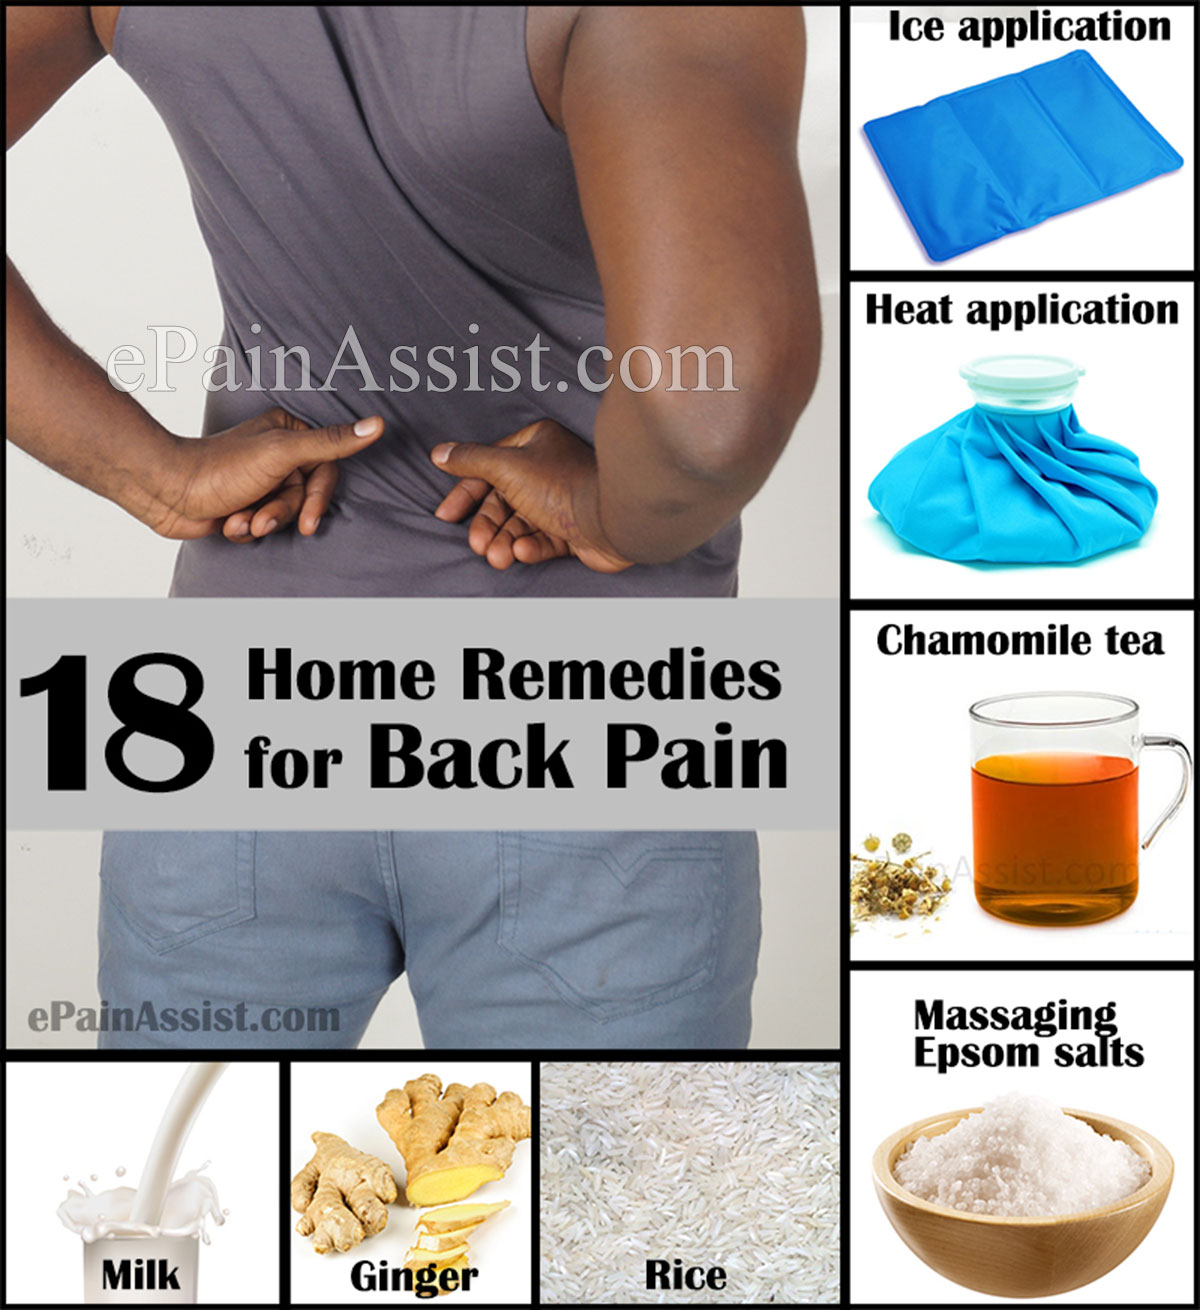 Treating Back Pain With Simple Home Remedies